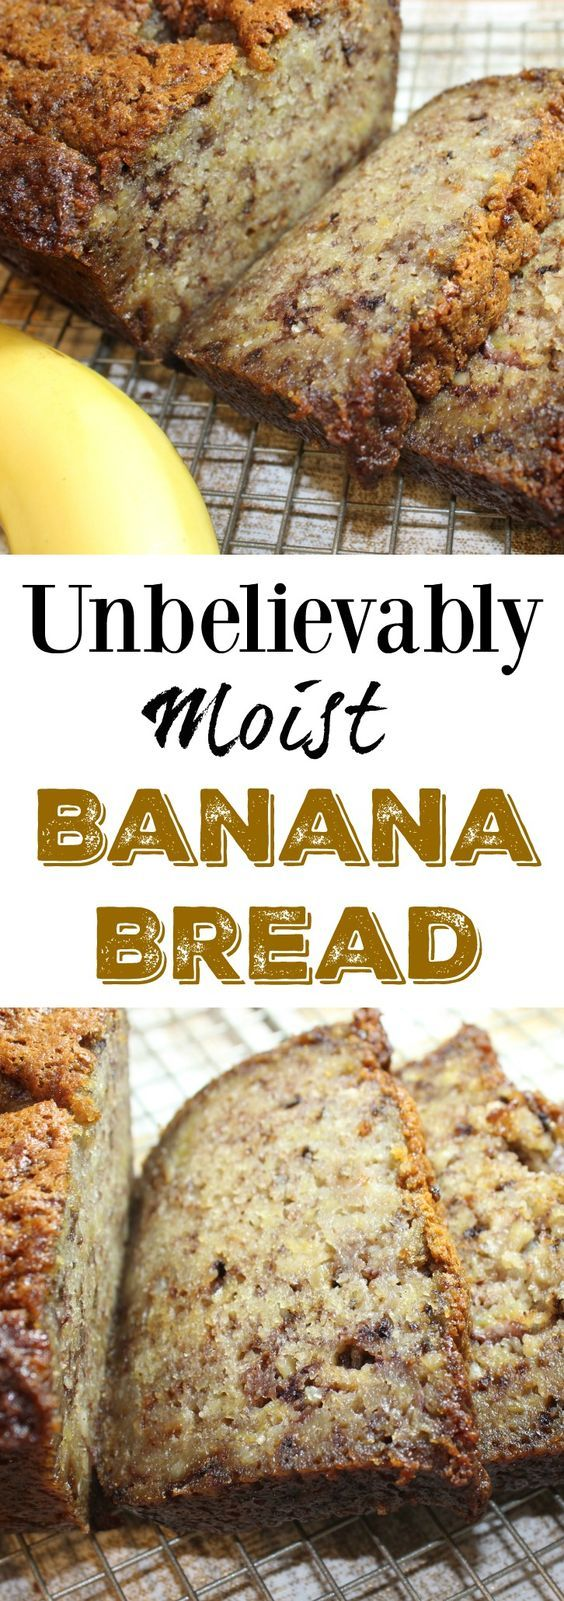 Unbelievably Moist Banana Bread - Forks 'n' Flip Flops